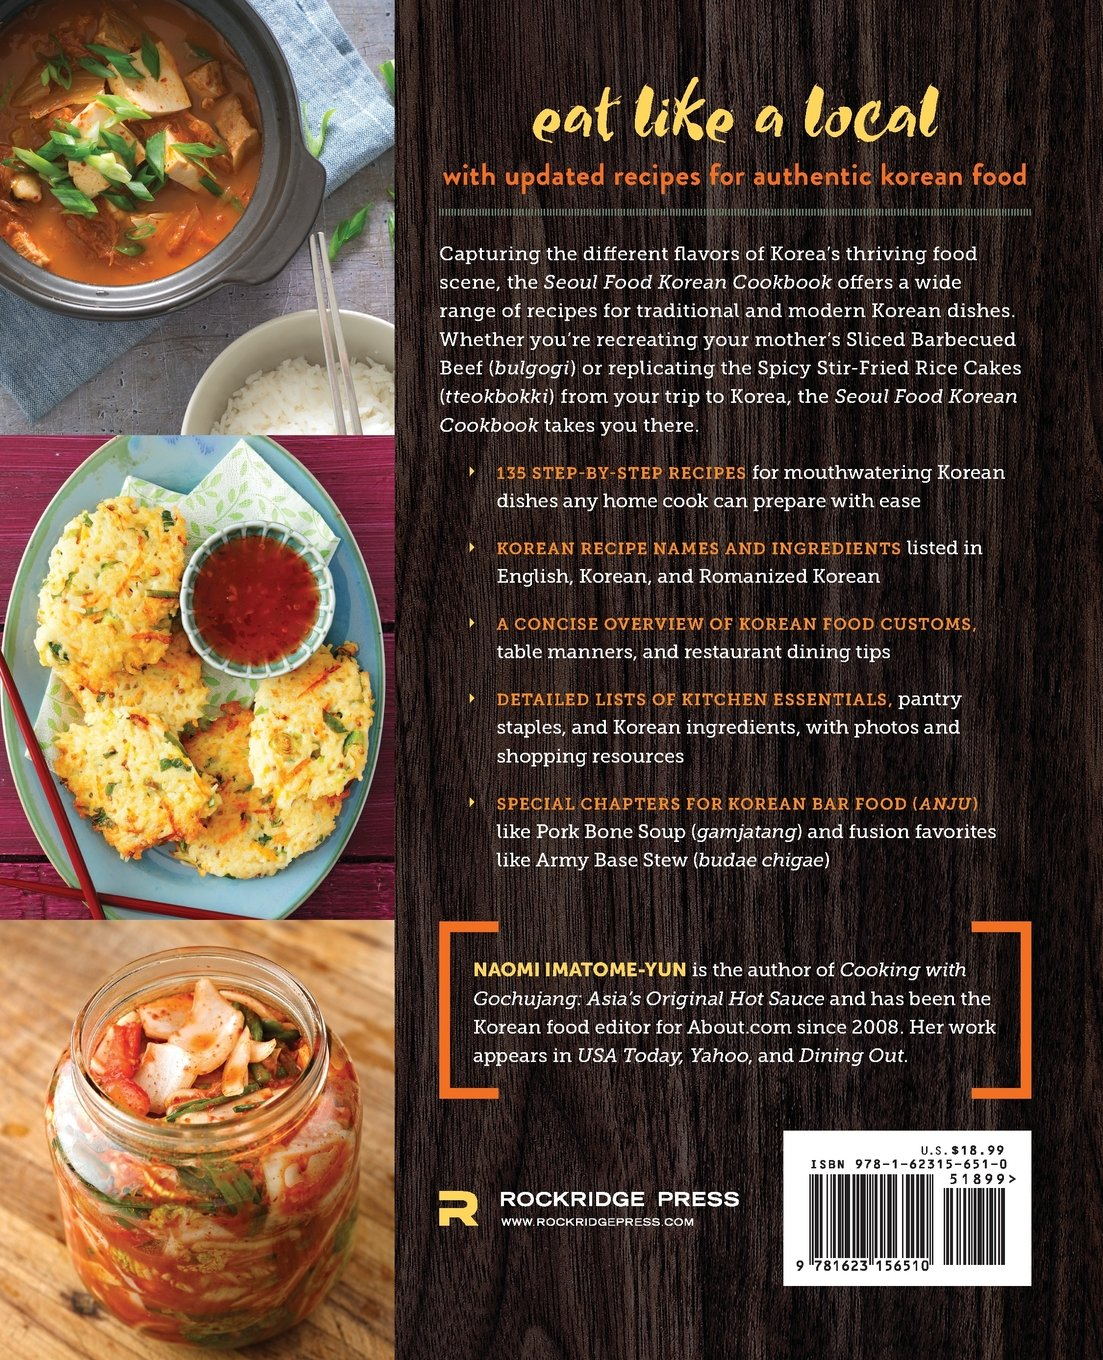 Seoul food korean cookbook korean cooking from kimchi and seoul food korean cookbook korean cooking from kimchi and bibimbap to fried chicken and bingsoo naomi imatome yun 9781623156510 amazon books forumfinder Image collections